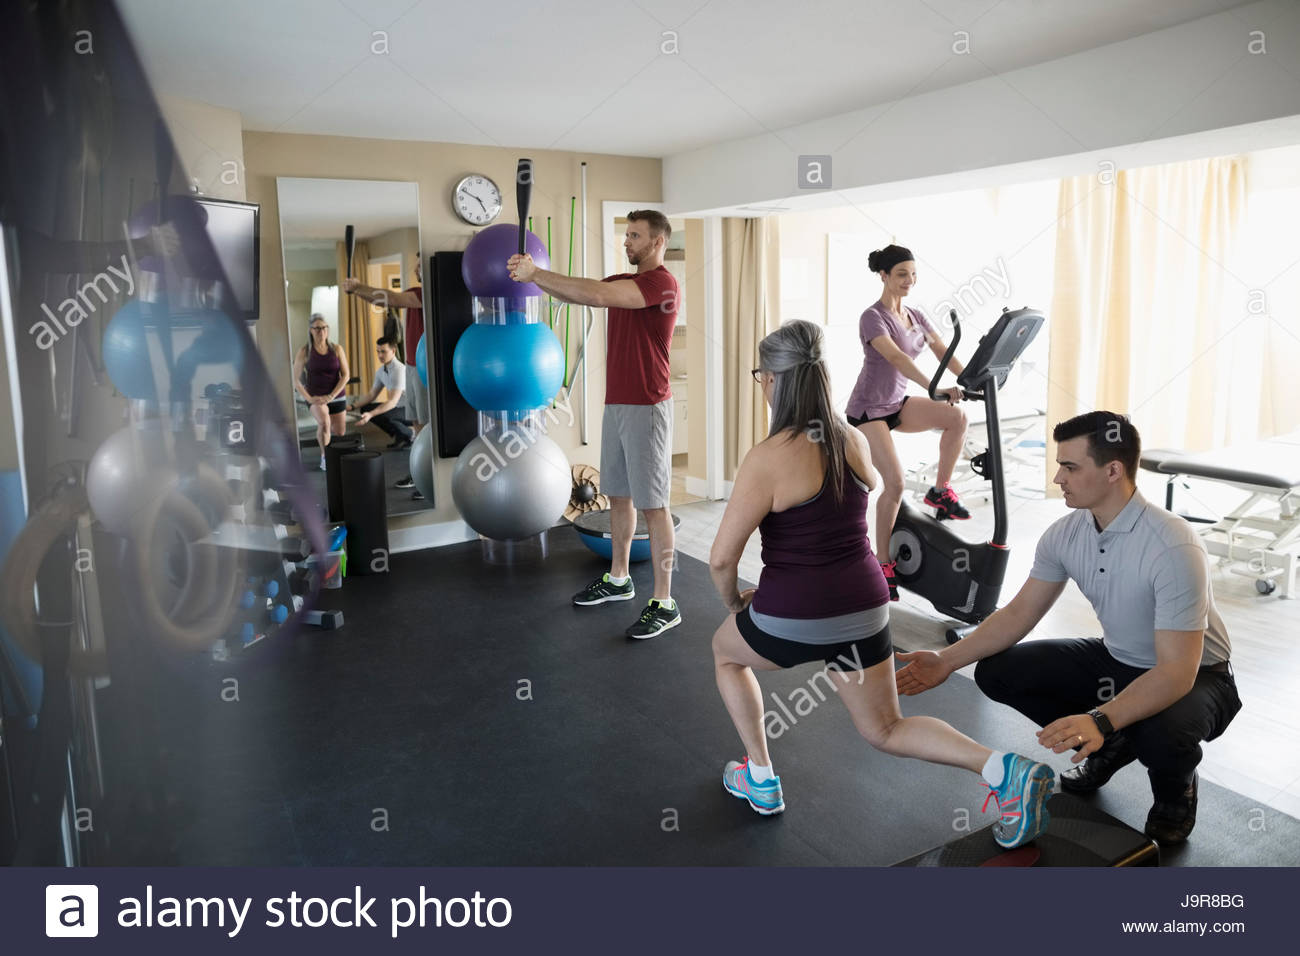 Male physiotherapist guiding clients stretching and exercising in clinic gym - Stock Image